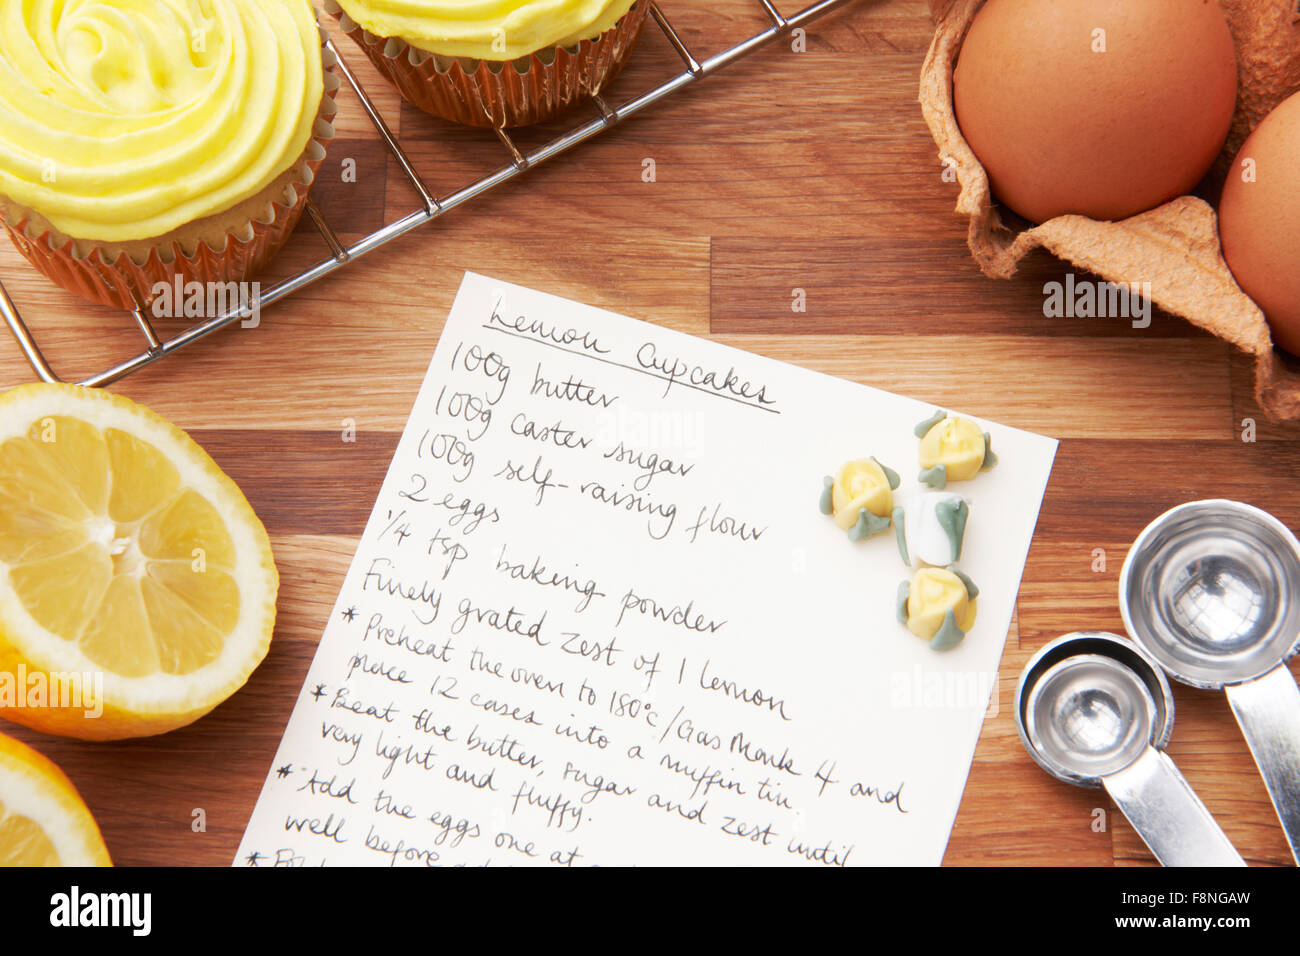 Recipe For Lemon Cupcakes With Ingredients - Stock Image